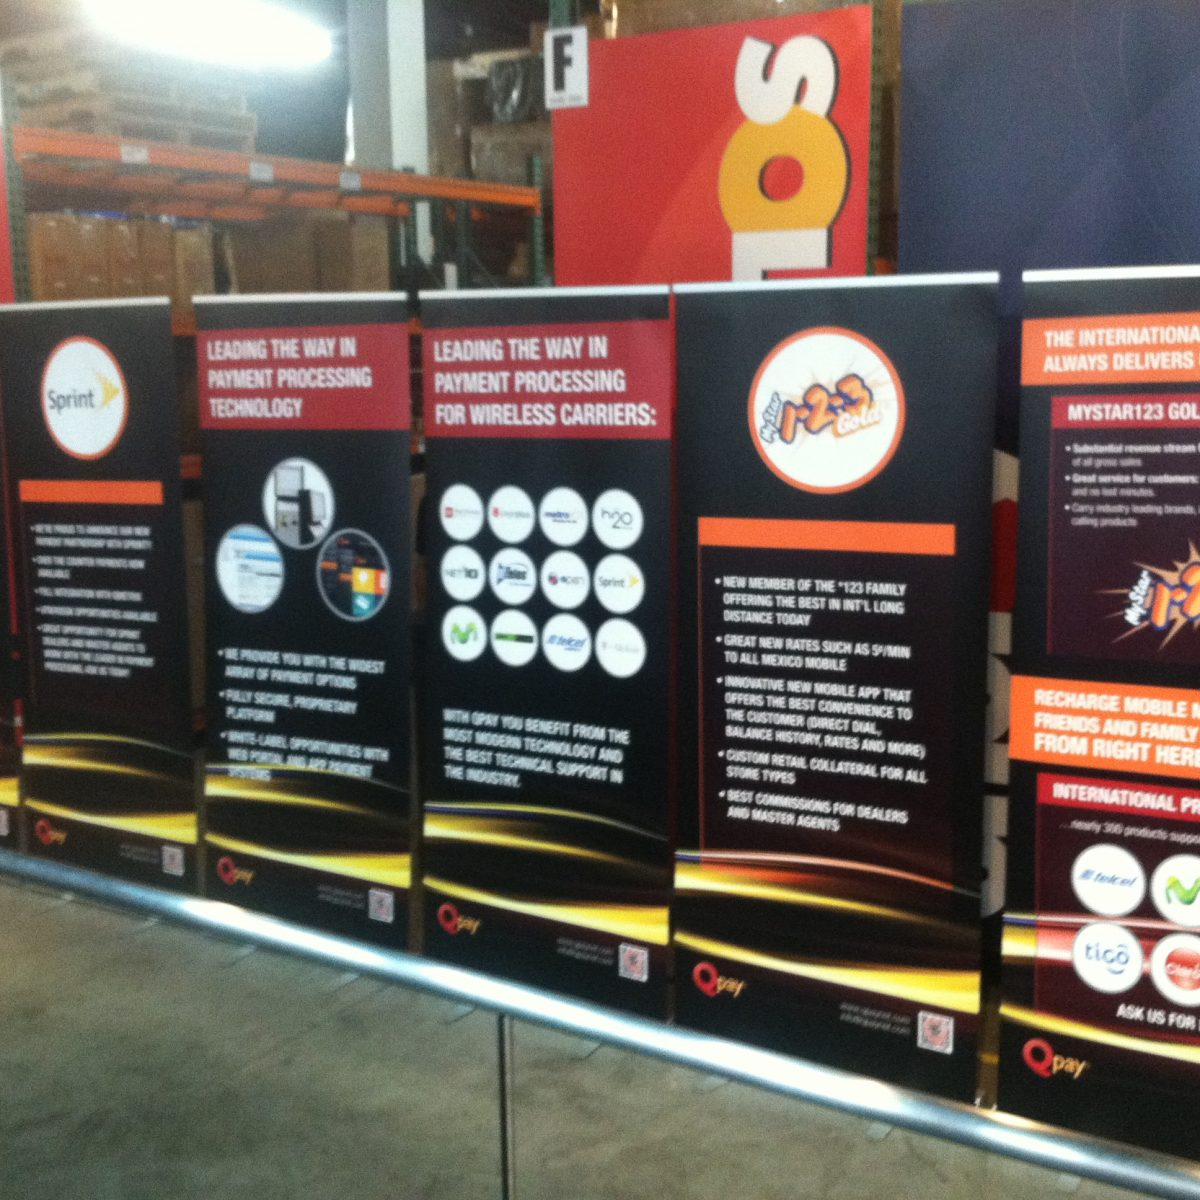 17) Retractable Banner Wall